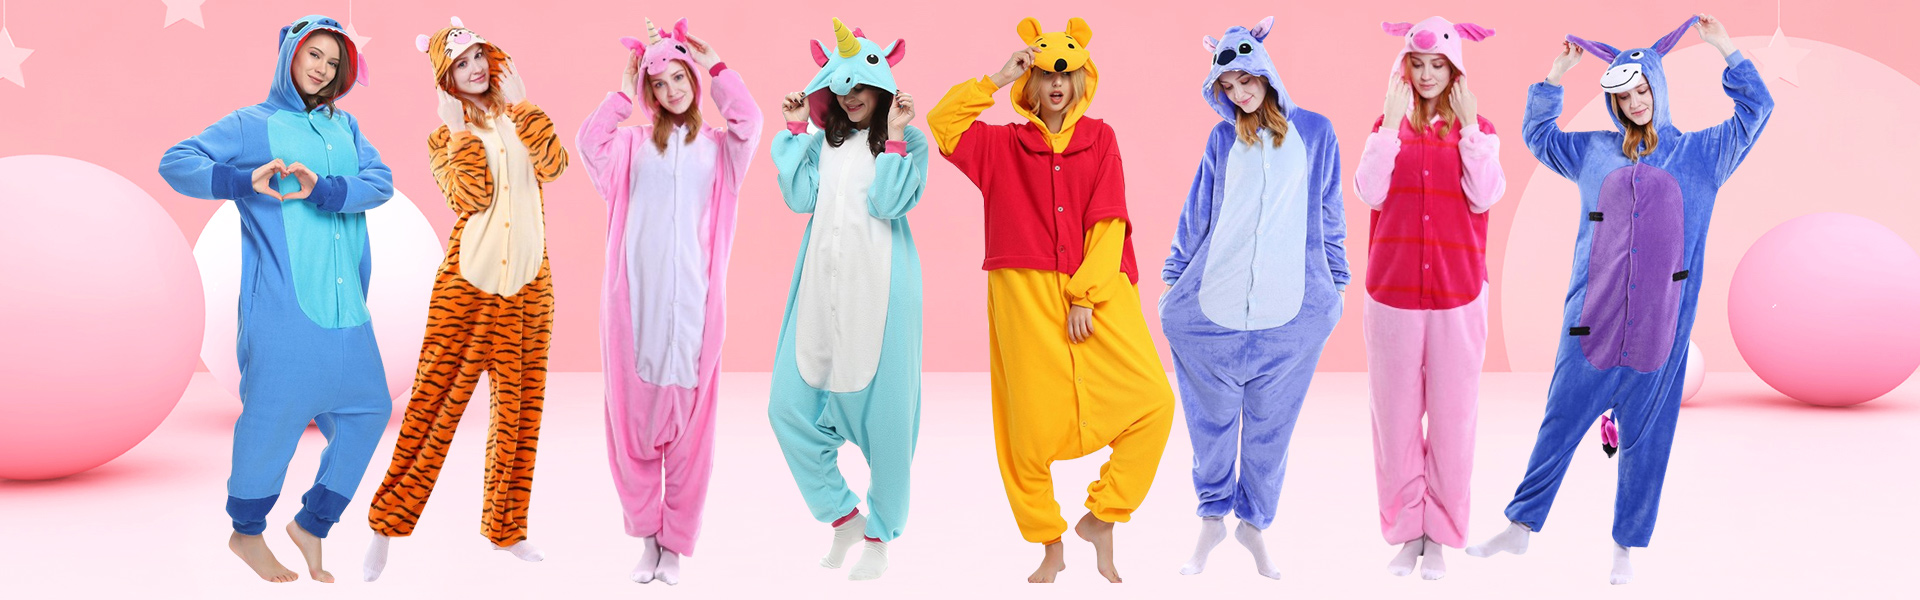 Animal Costumes & Animal Onesie Pajamas For Adult Women, Mens - FavoUnicorn.com